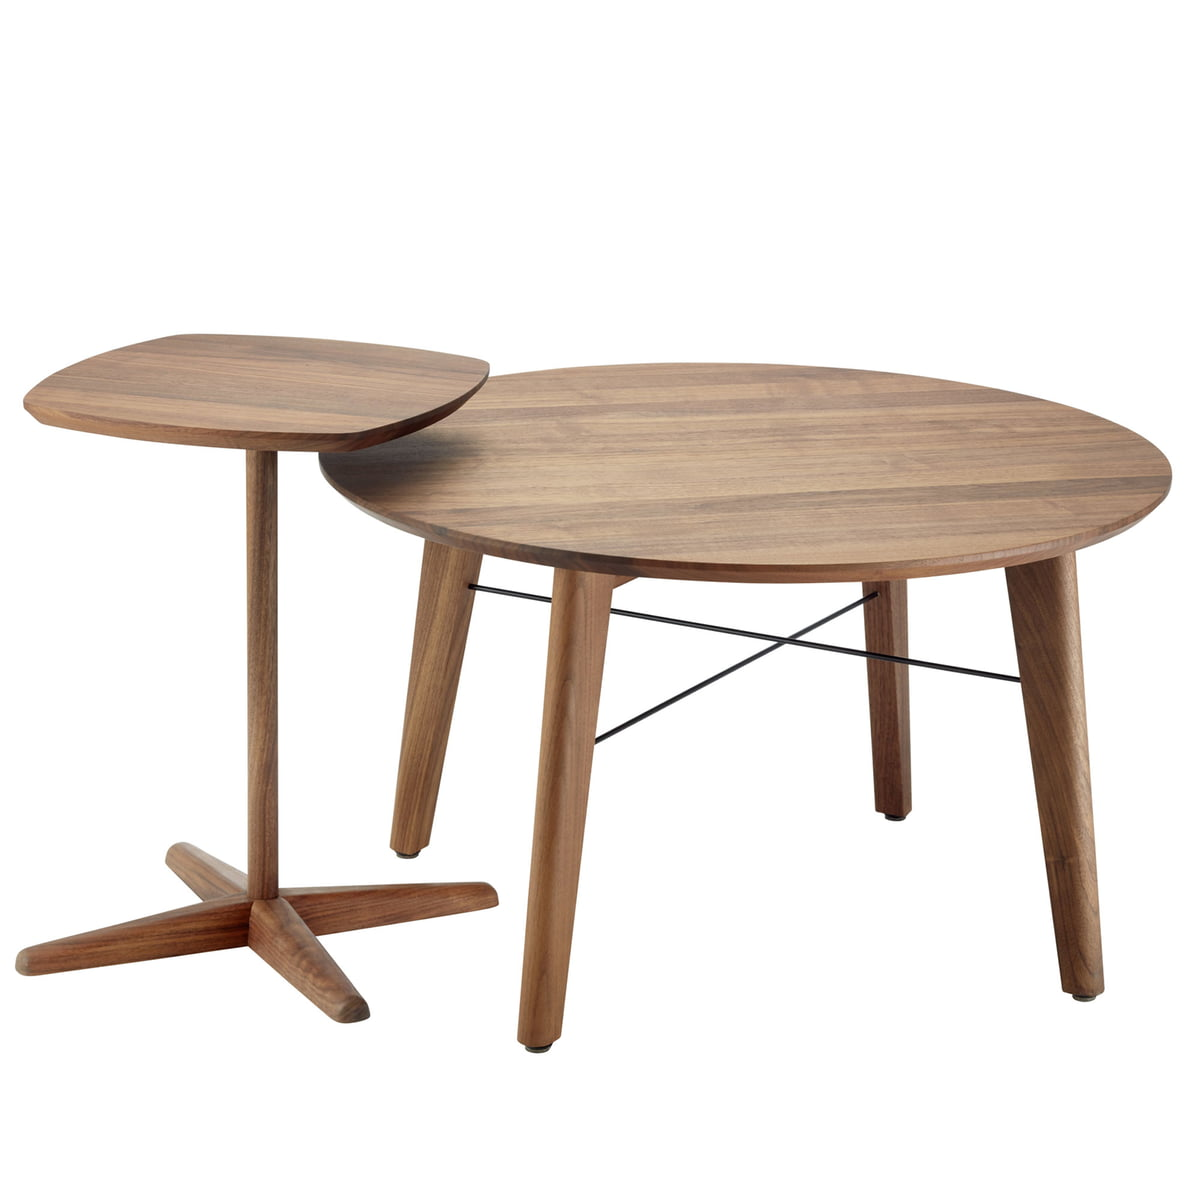 S 1810 coffee table by thonet connox shop for Table thonet